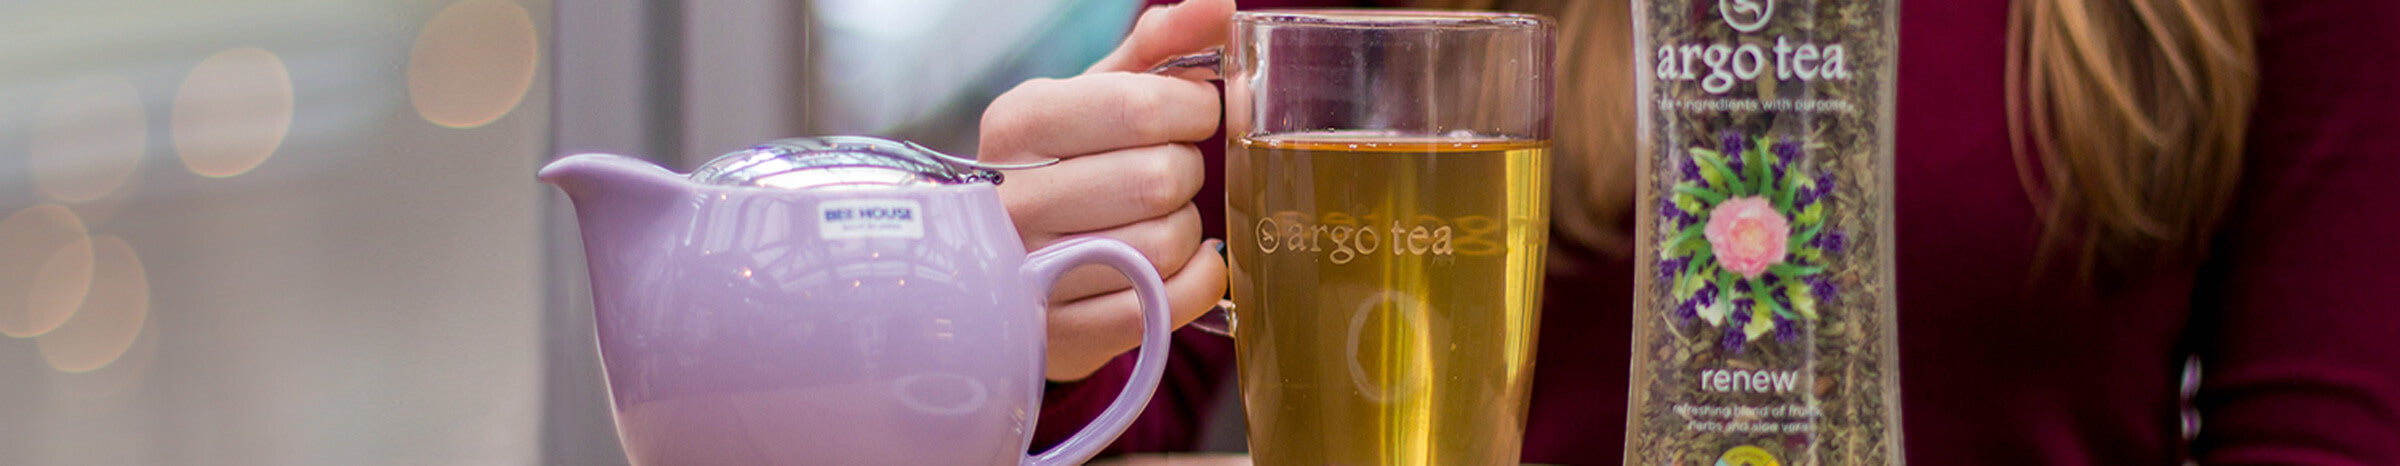 Argo Tea Shop